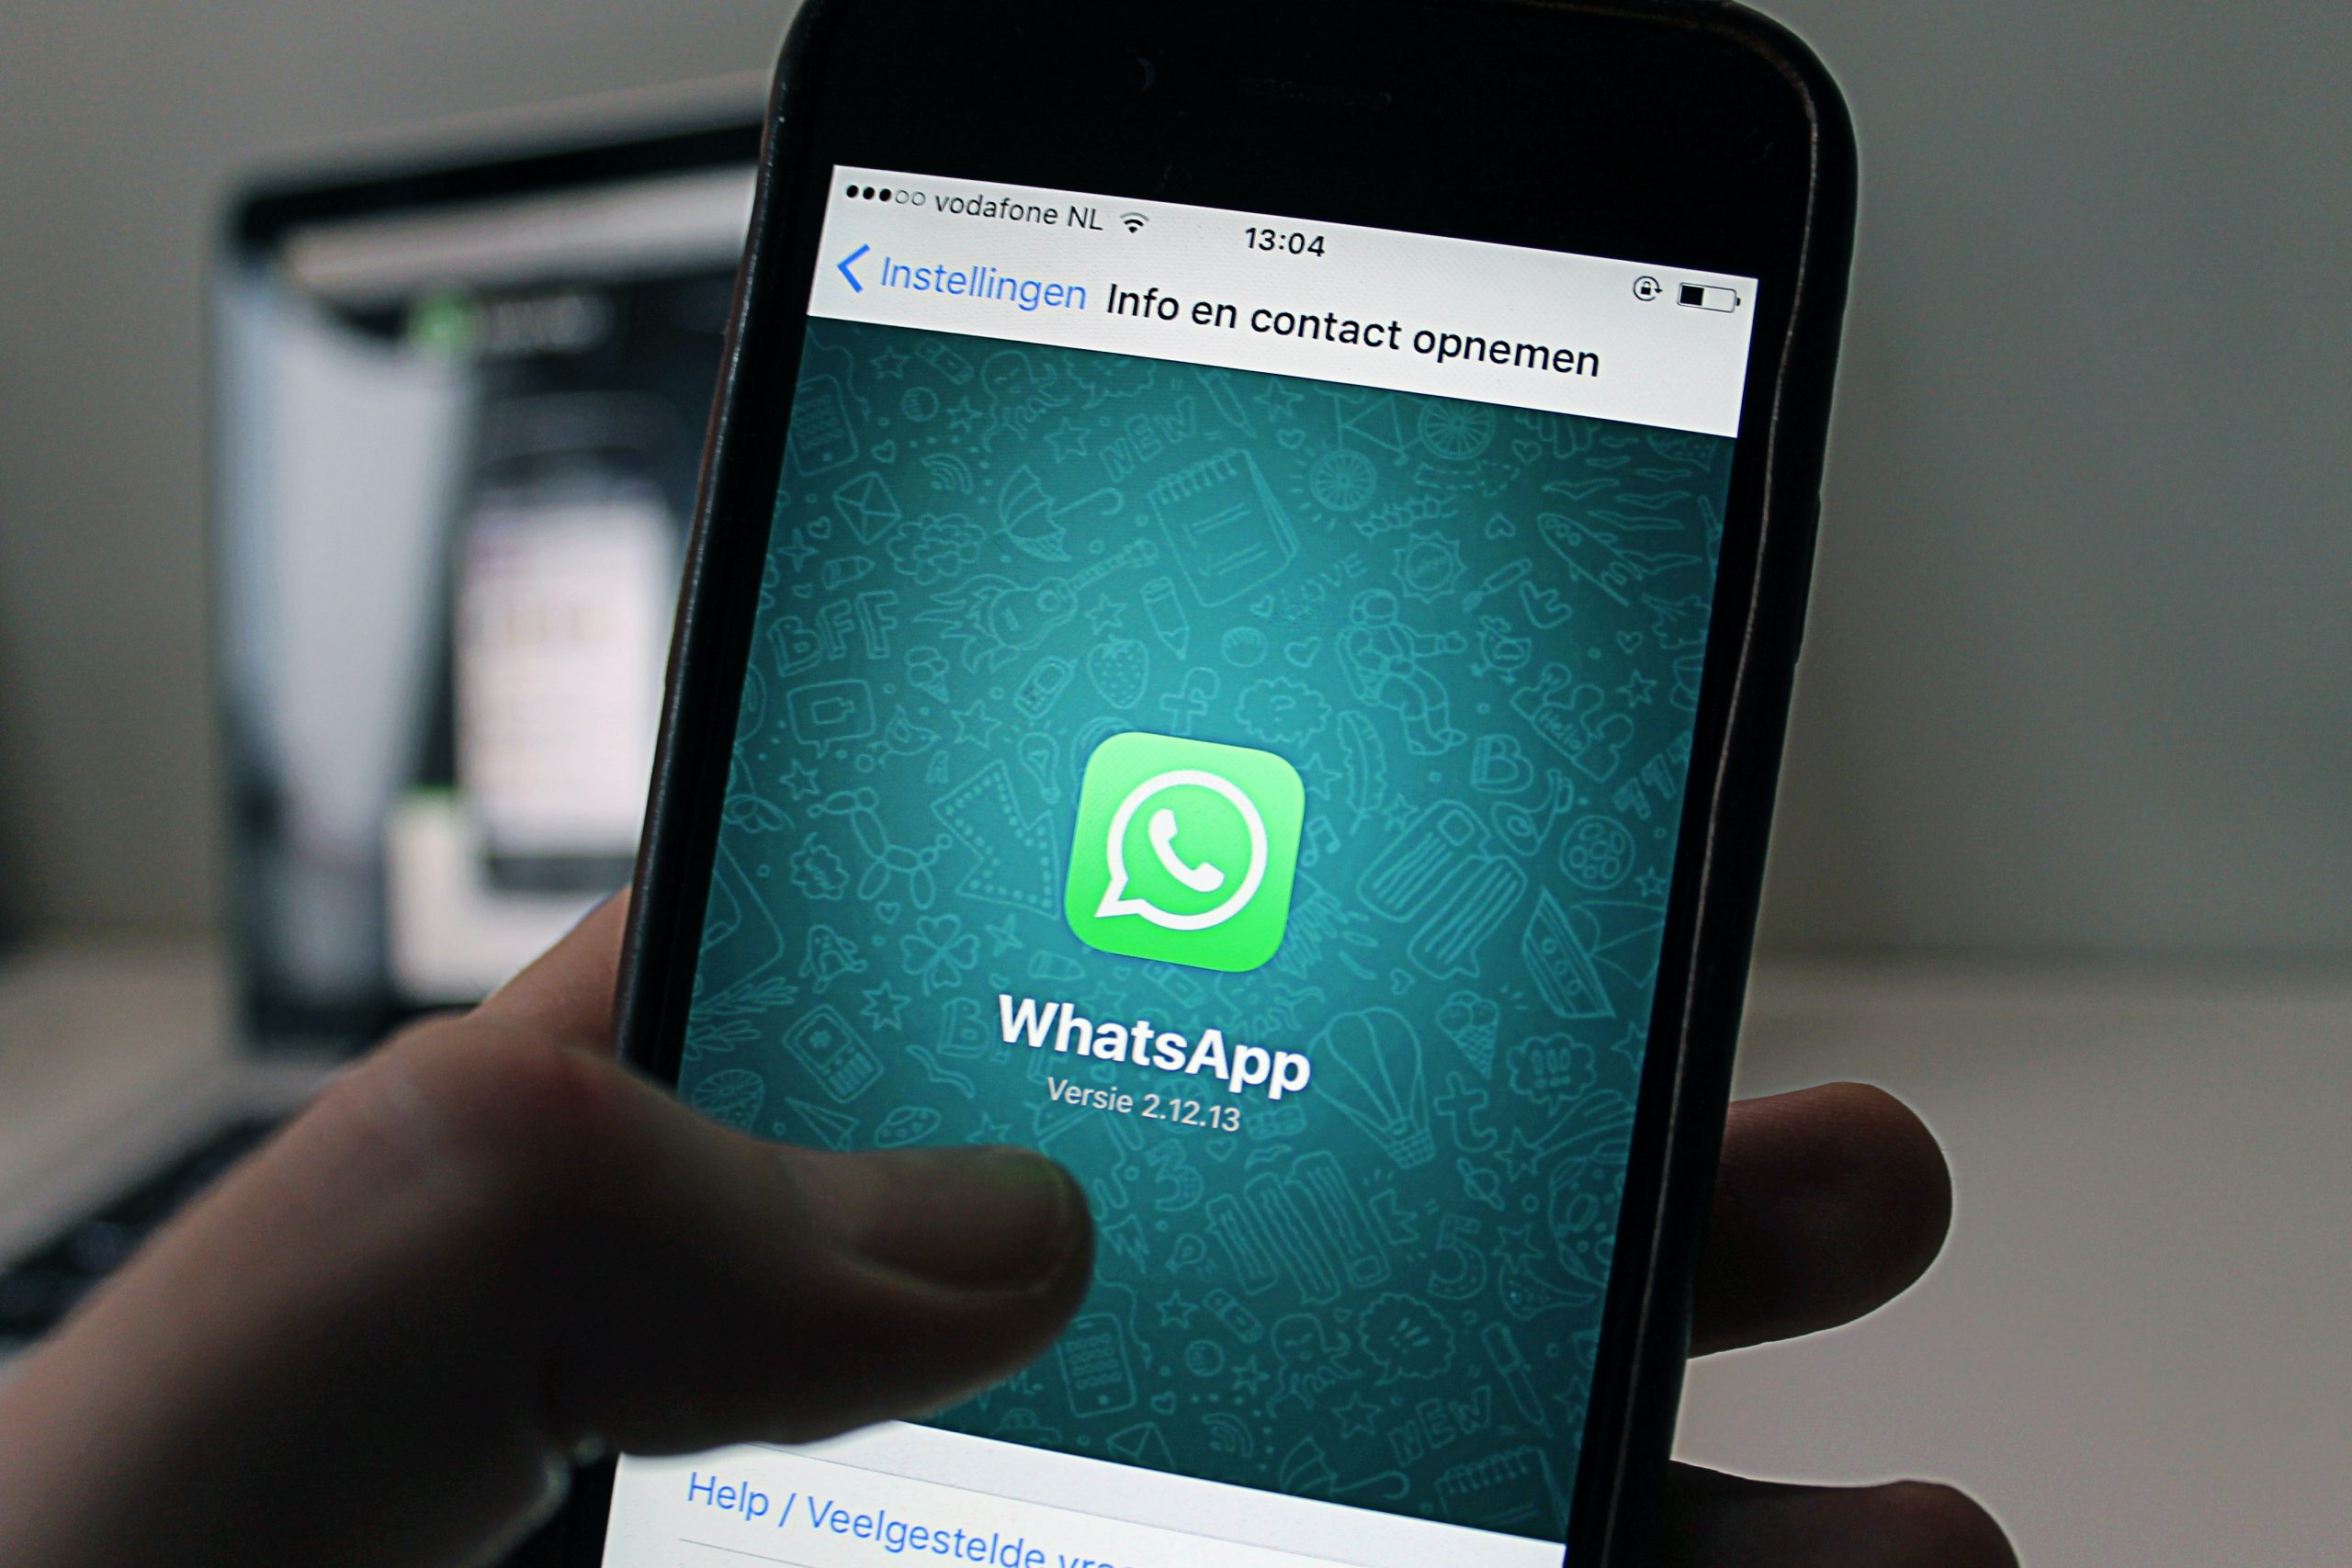 How to Install WhatsApp without Mobile Number?